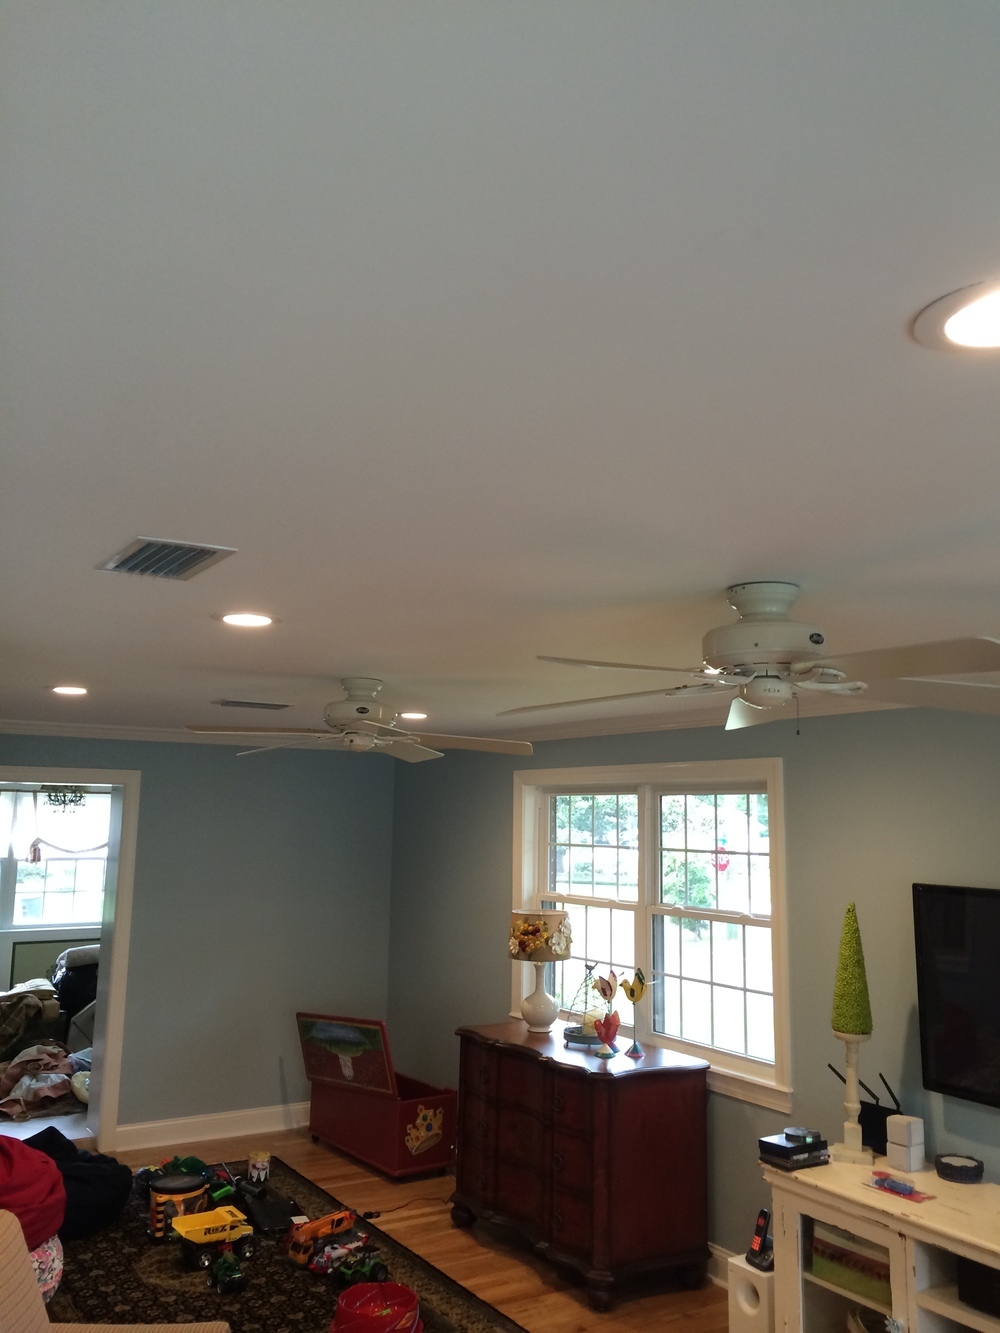 Home remodel - lighting & fans